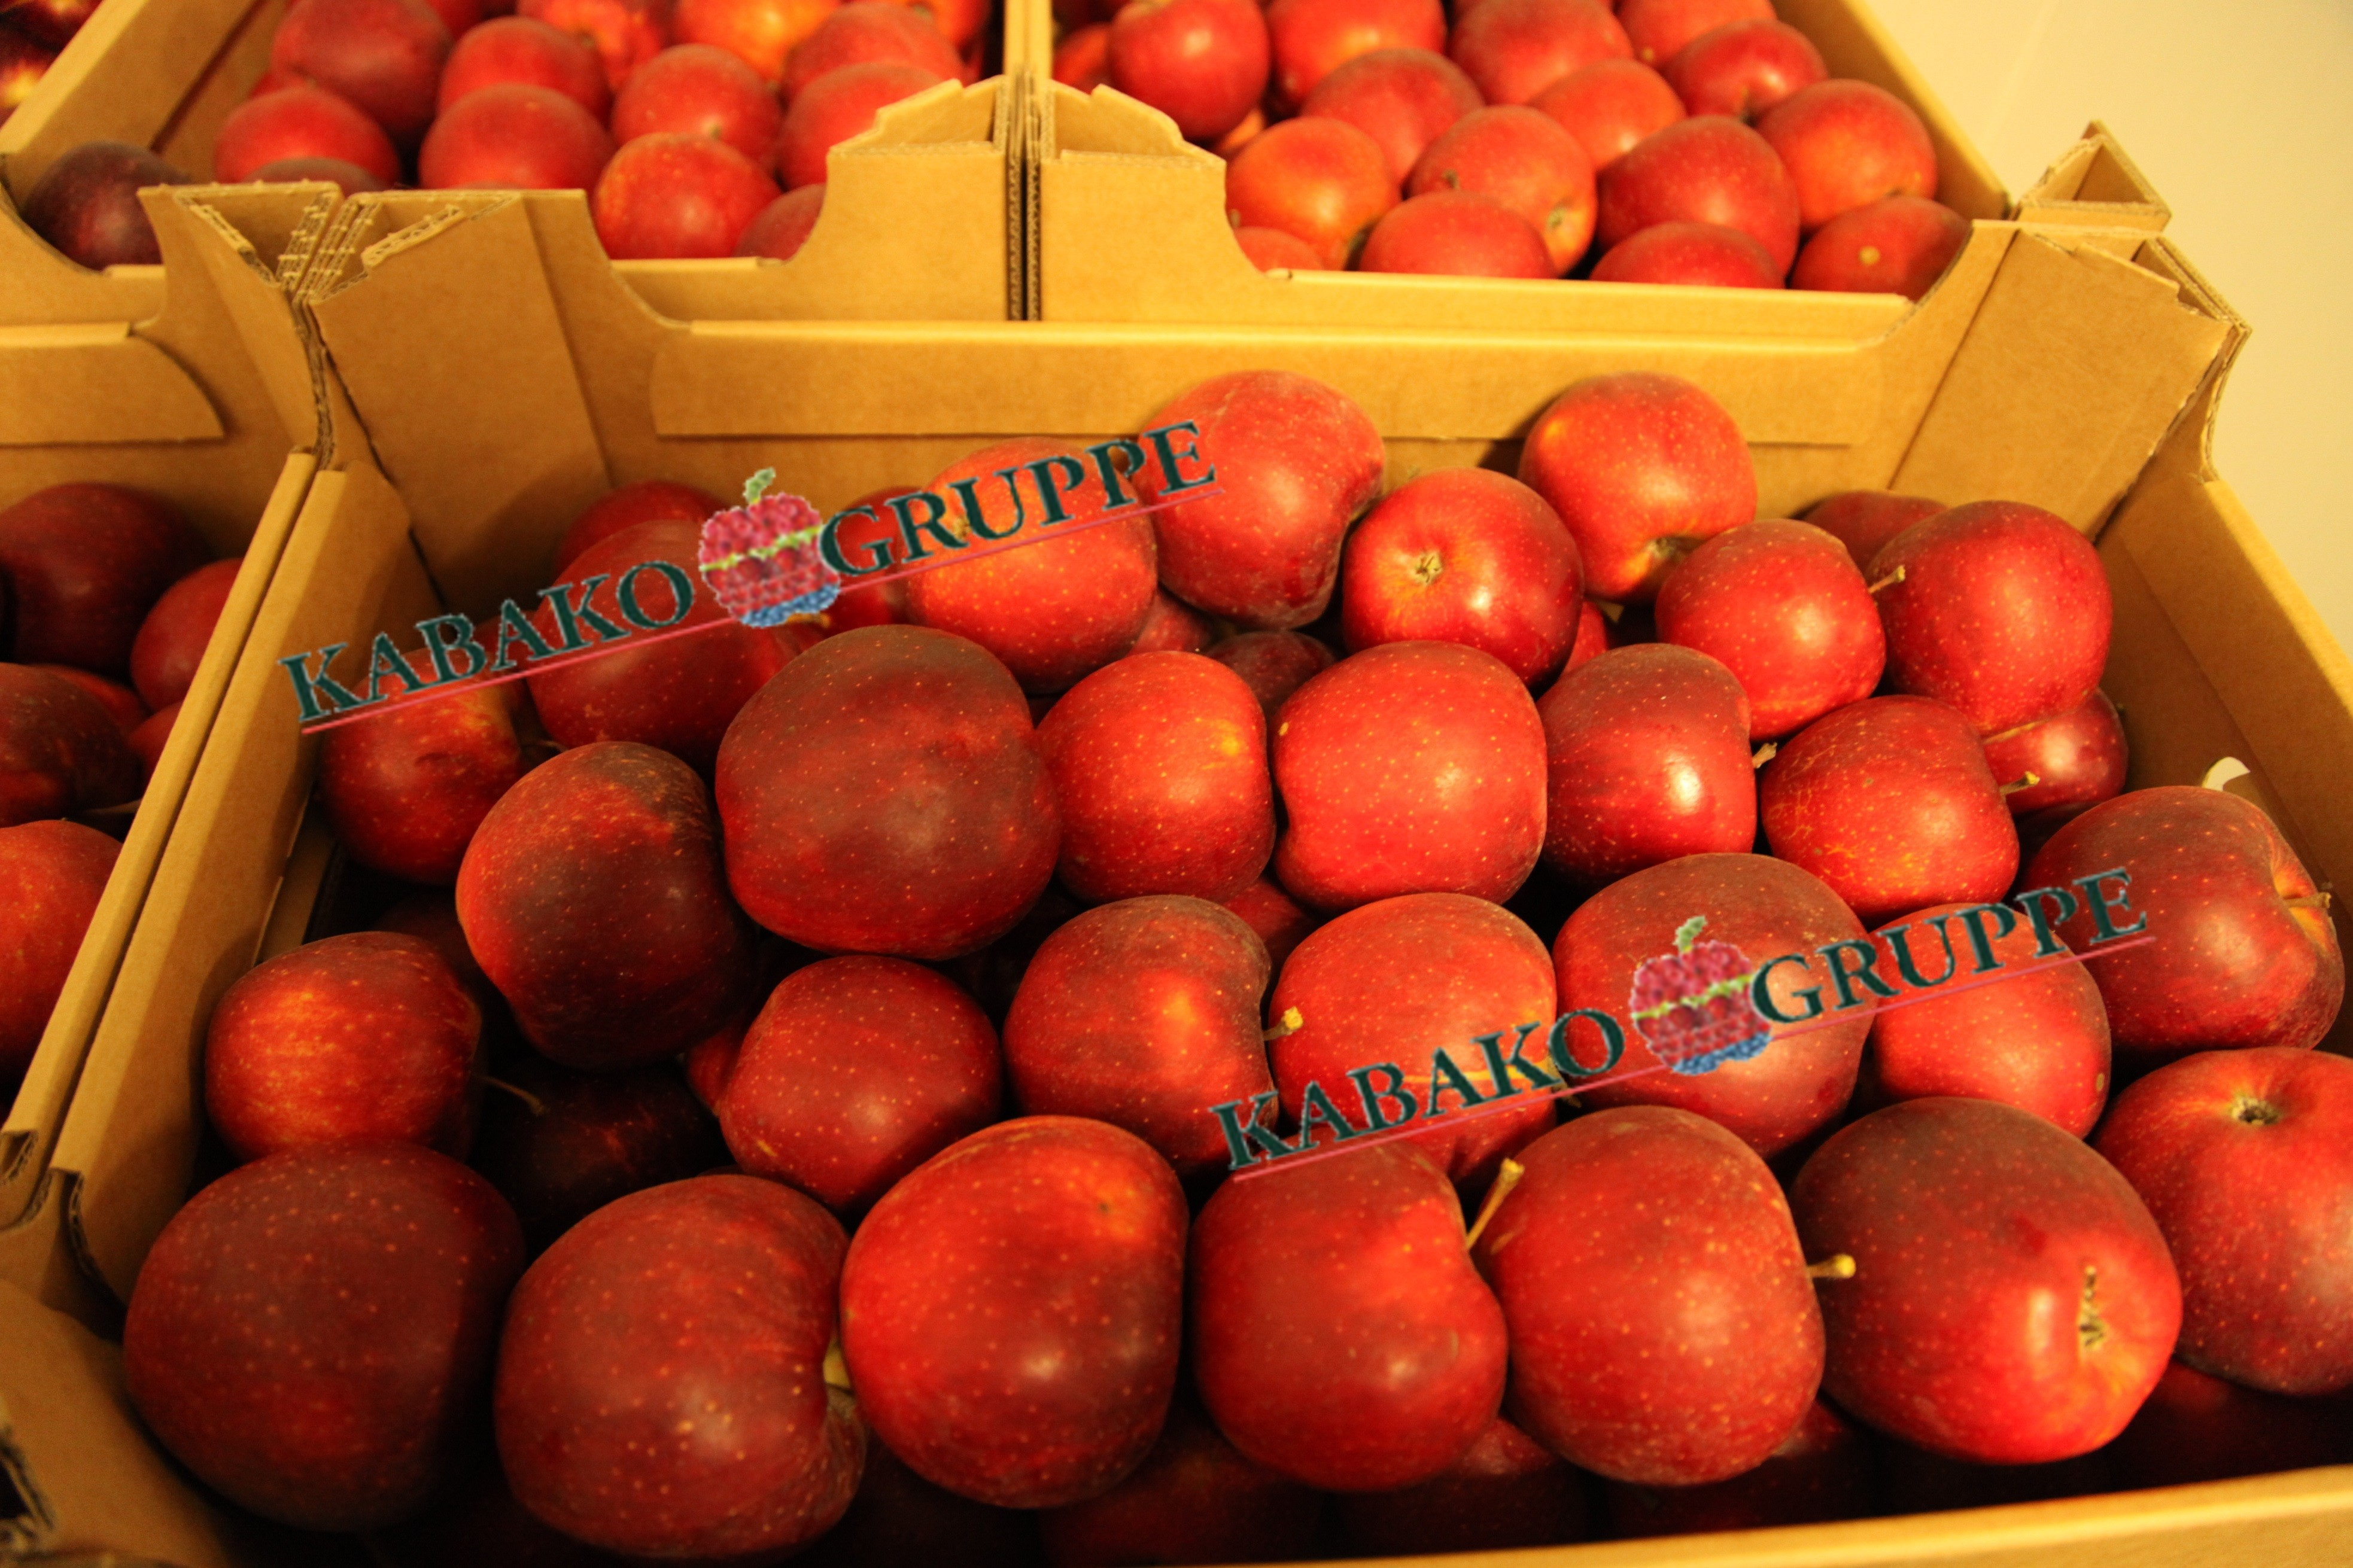 Frozen (IQF) Apples 83